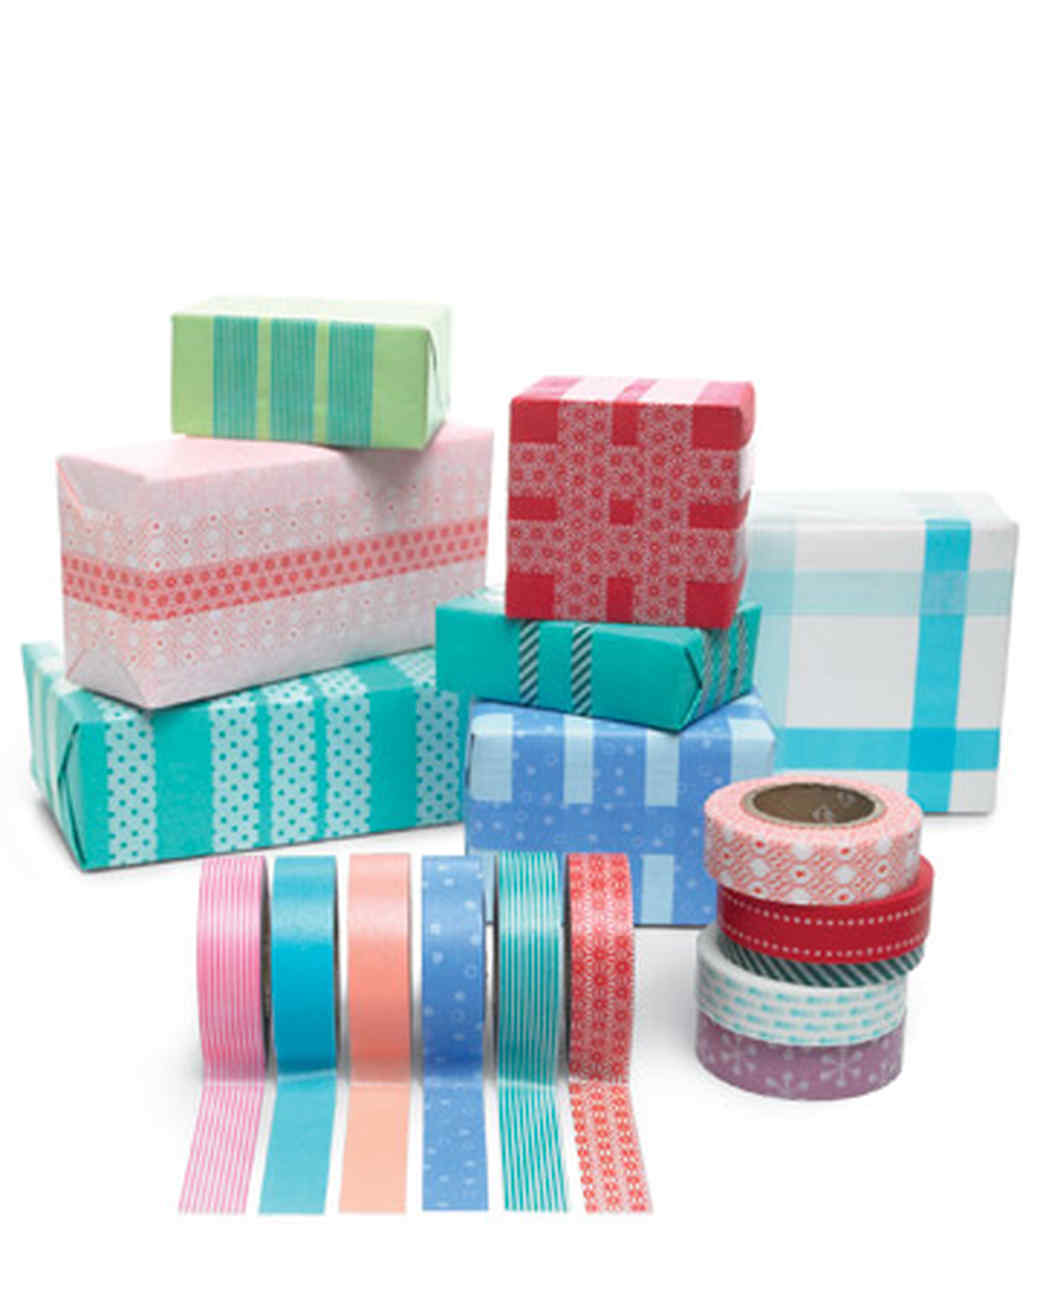 mld10523_1209_wrapping_ribbons.jpg